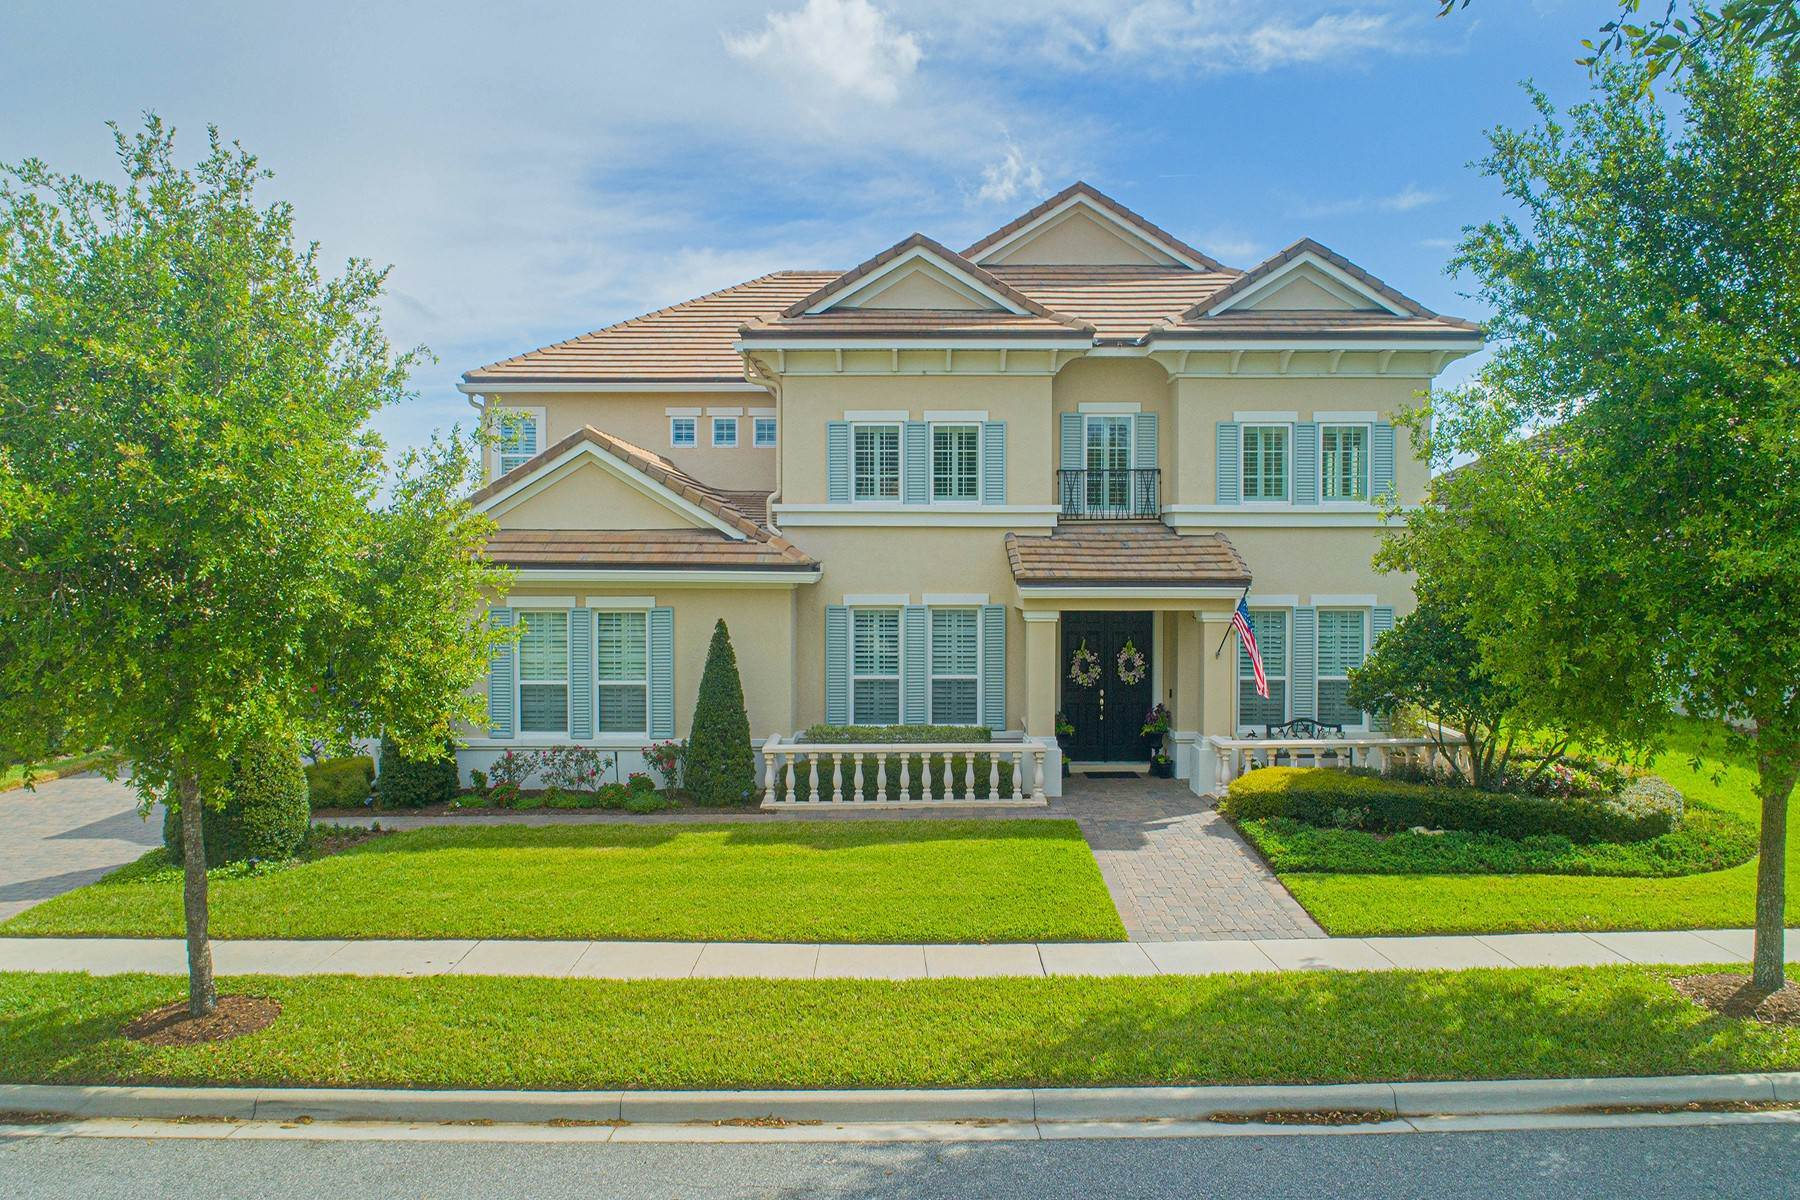 Single Family Homes for Sale at WINTER GARDEN 7549 Green Mountain Way Winter Garden, Florida 34787 United States